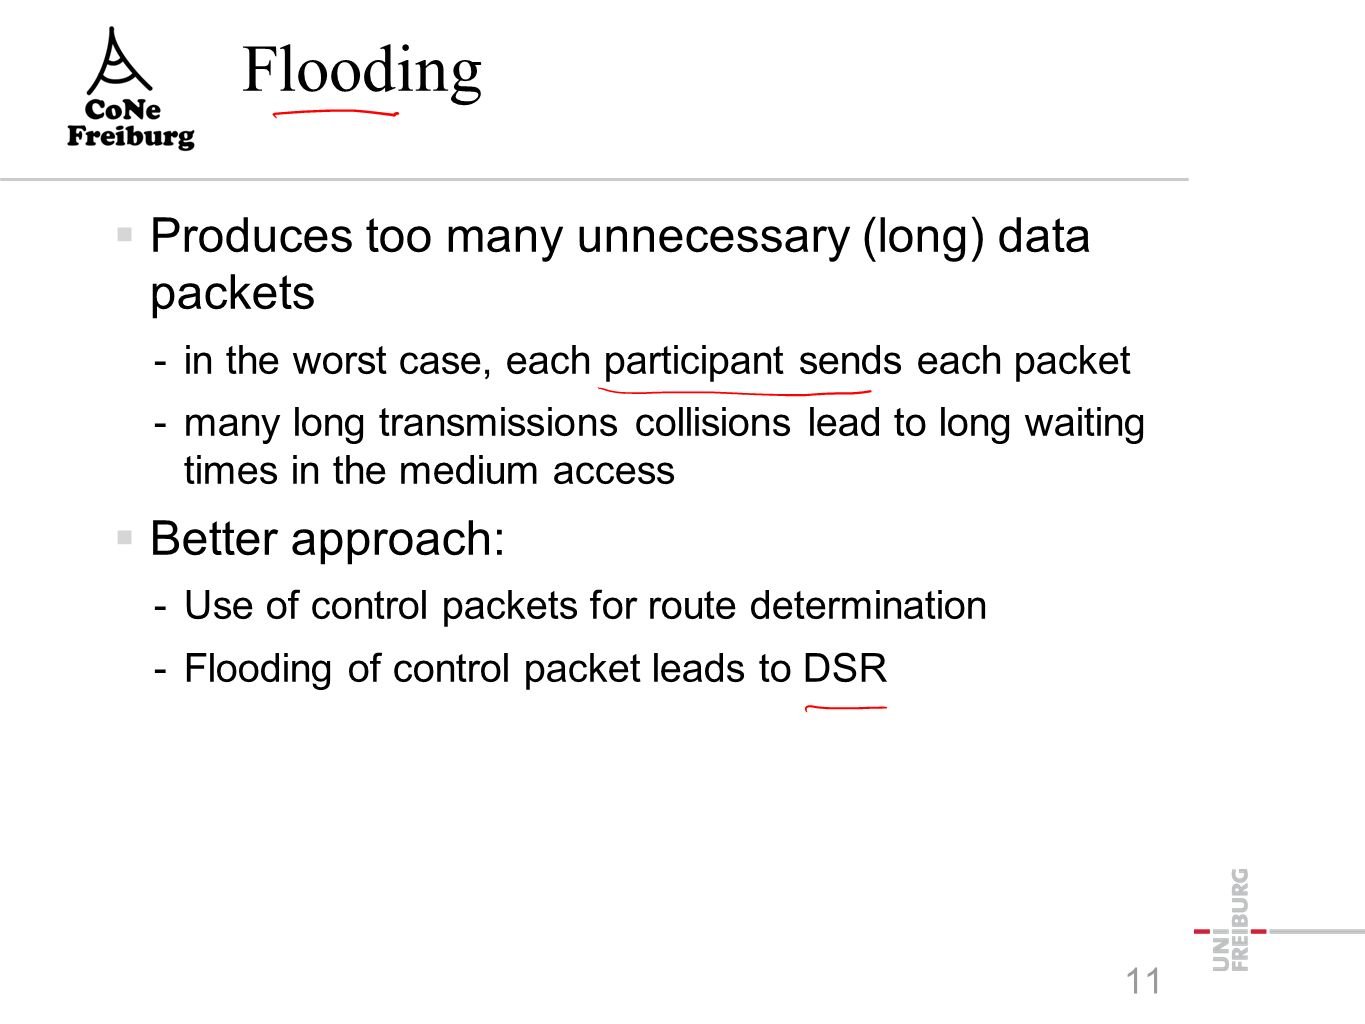 Flooding  Produces too many unnecessary (long) data packets -in the worst case, each participant sends each packet -many long transmissions collisions lead to long waiting times in the medium access  Better approach: -Use of control packets for route determination -Flooding of control packet leads to DSR 11